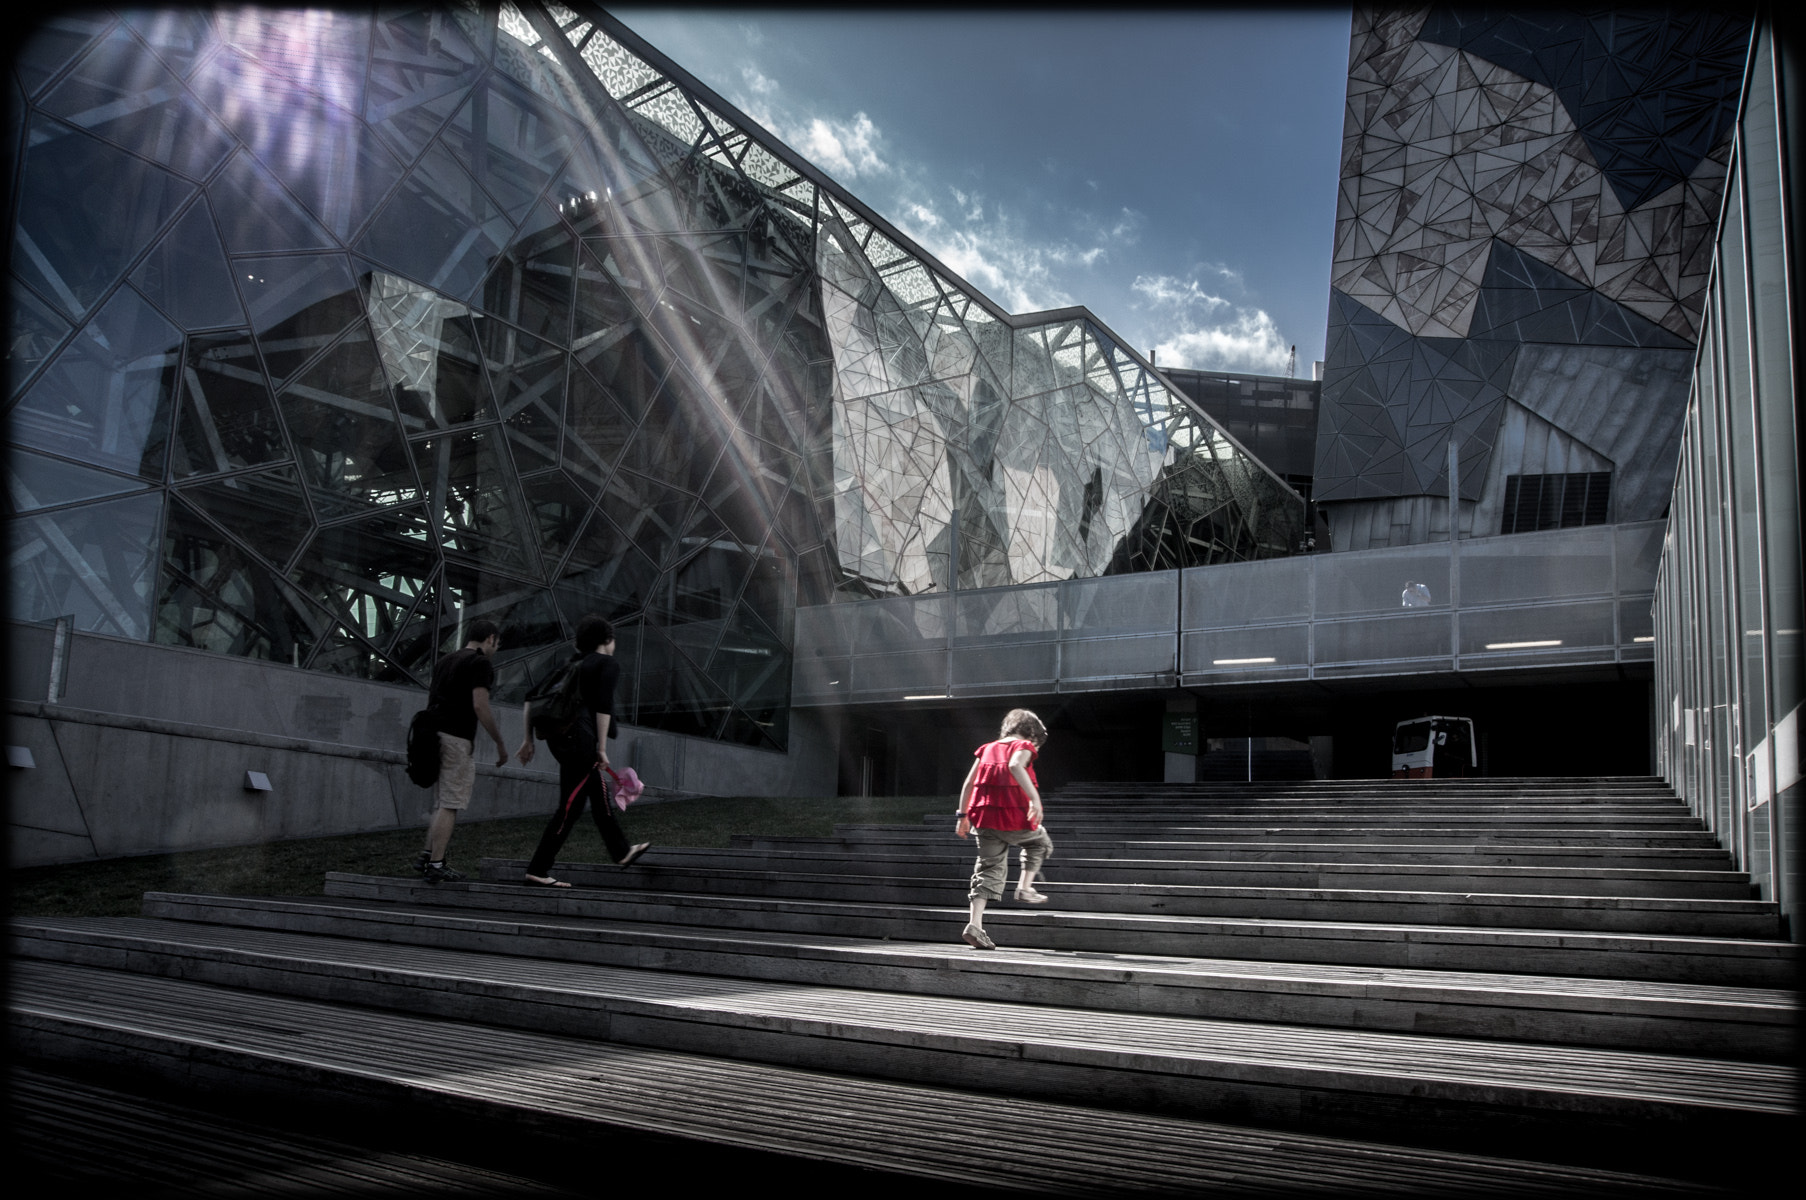 Photograph Federation Square by Mark Galer on 500px